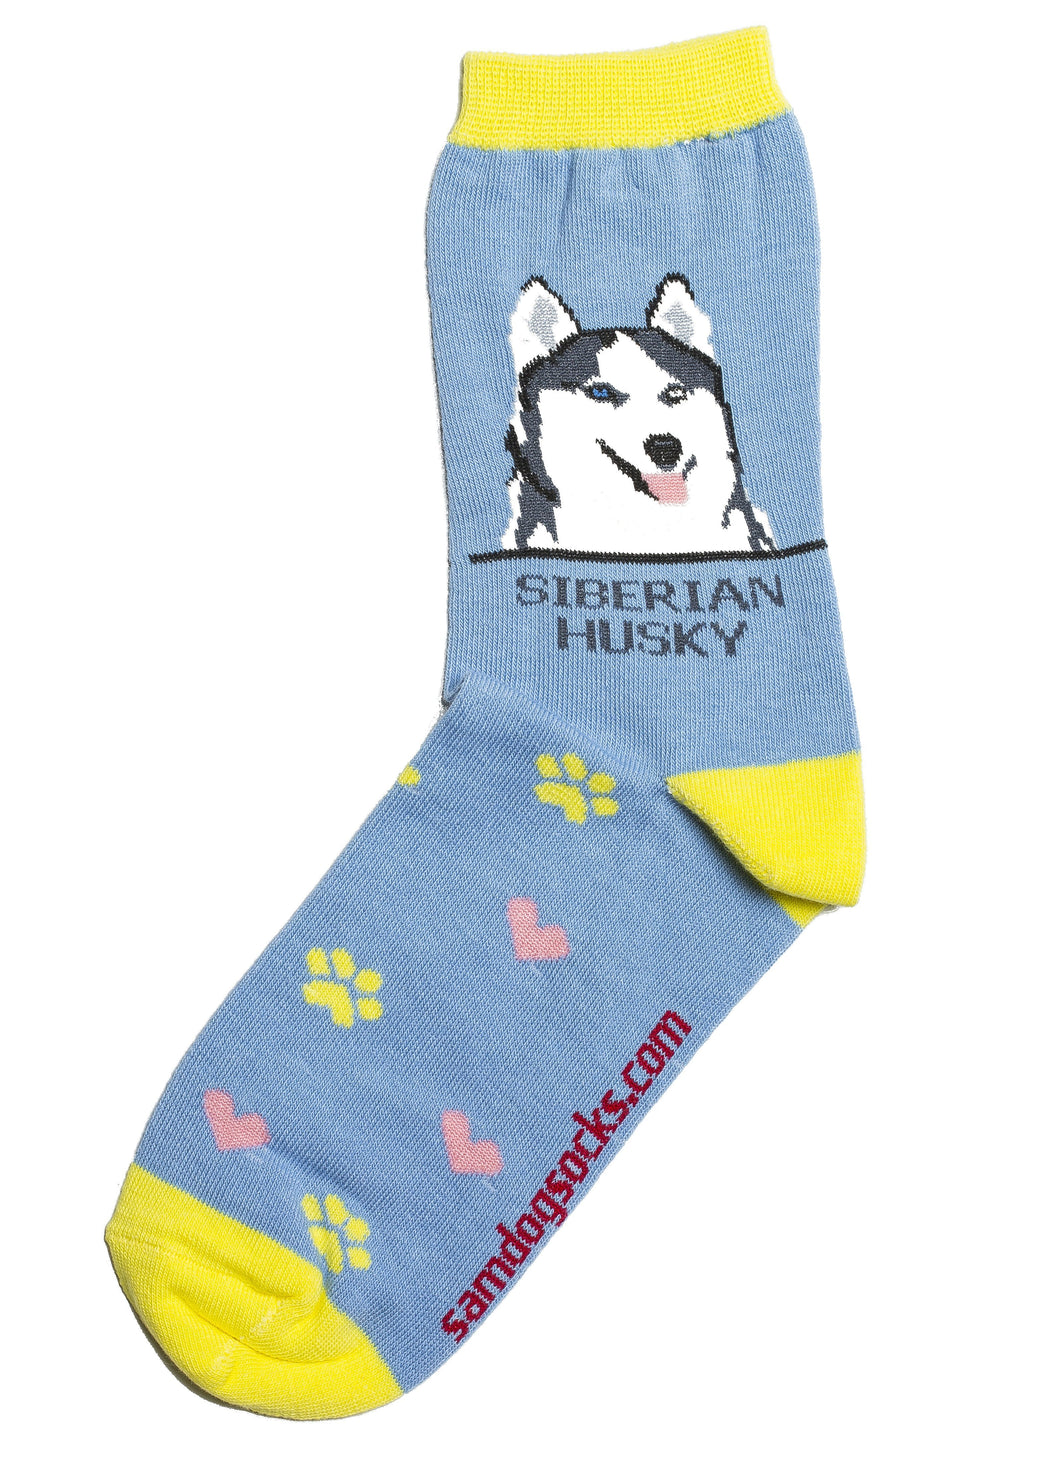 Siberian Husky Dog Socks - samnoveltysocks.com